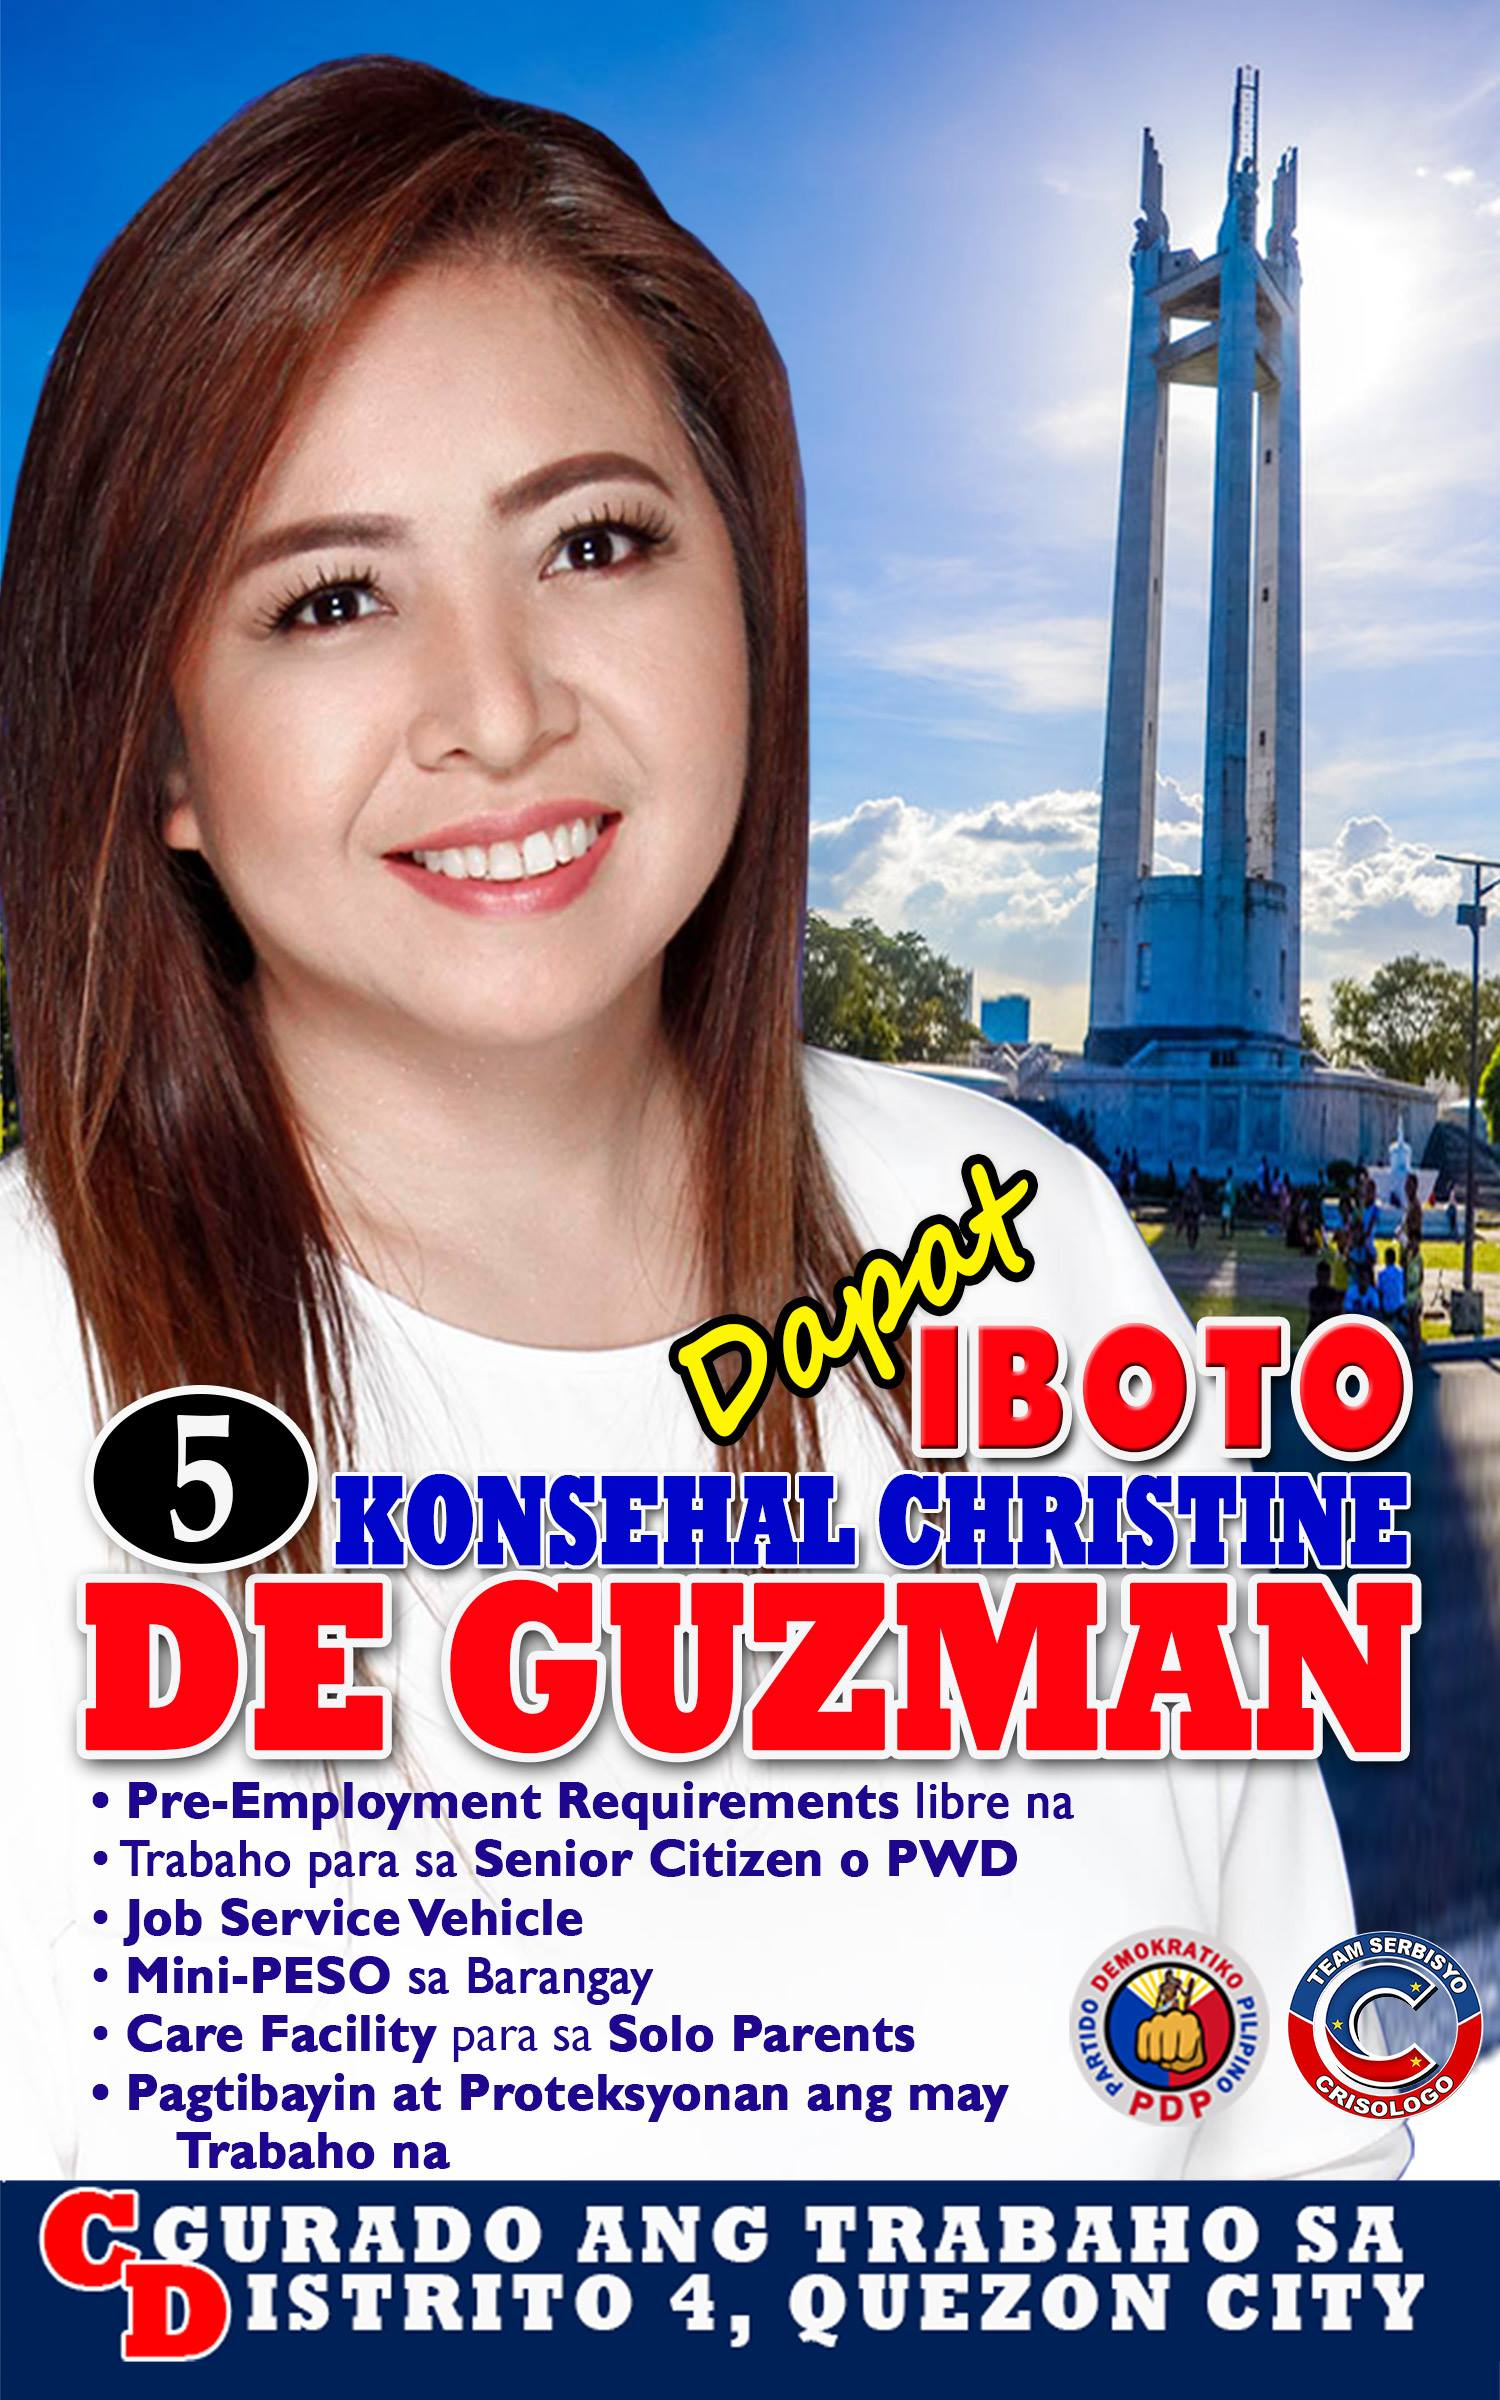 Christine De Guzman: Trabaho bilang sagot sa kahirapan, ipaglalaban! | free Classified | Free Advertising | free classified ads